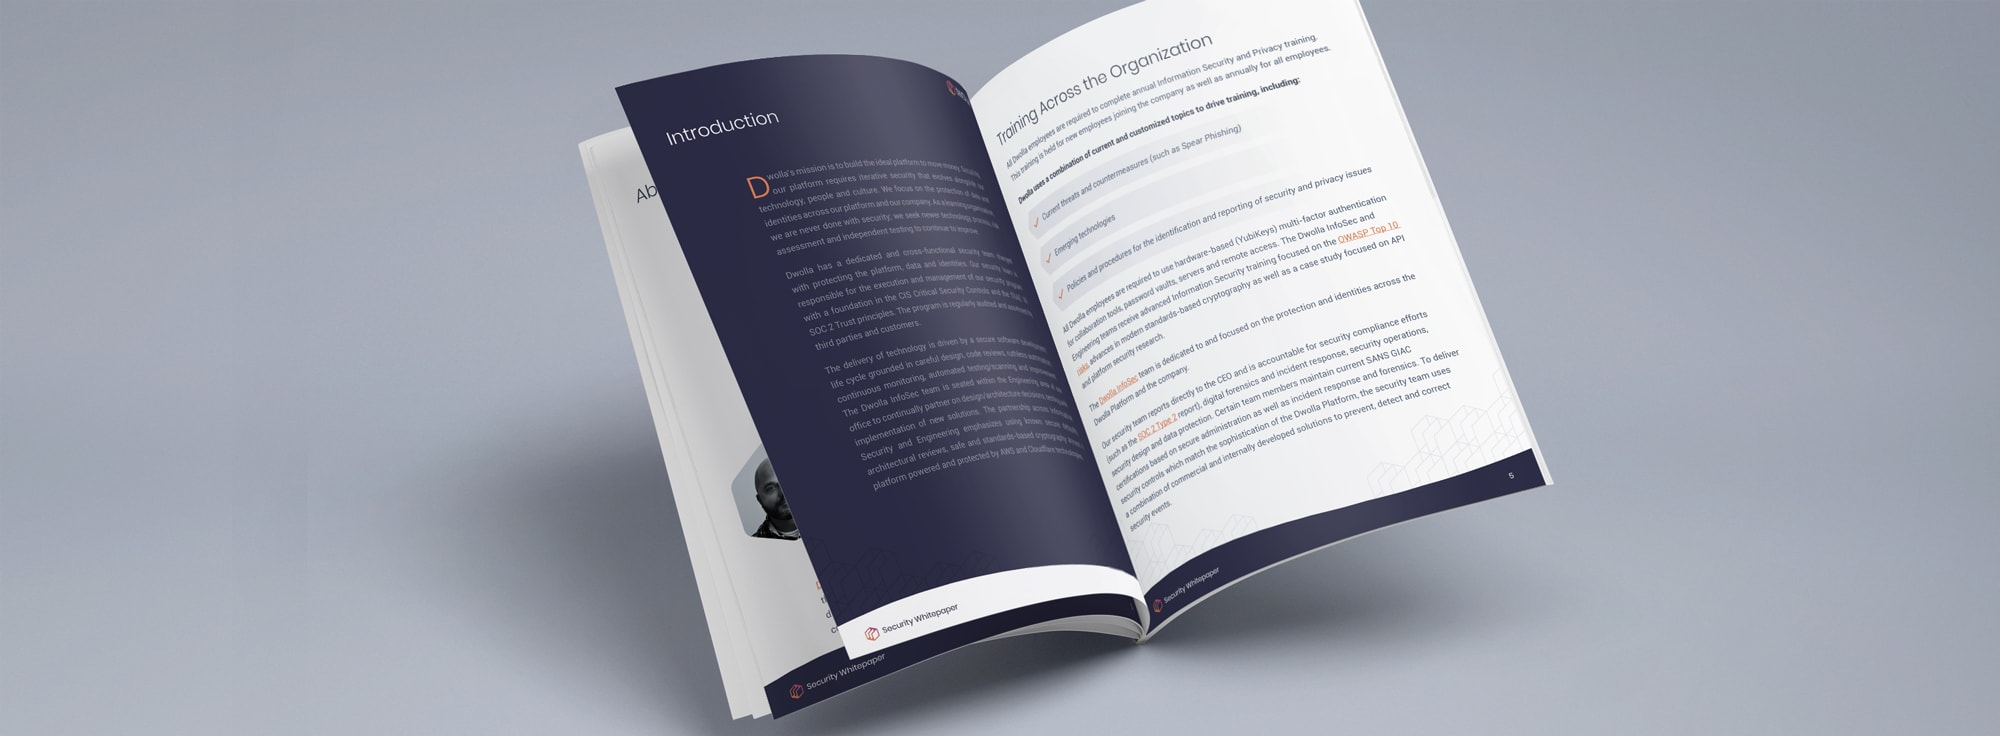 information security white paper featured image